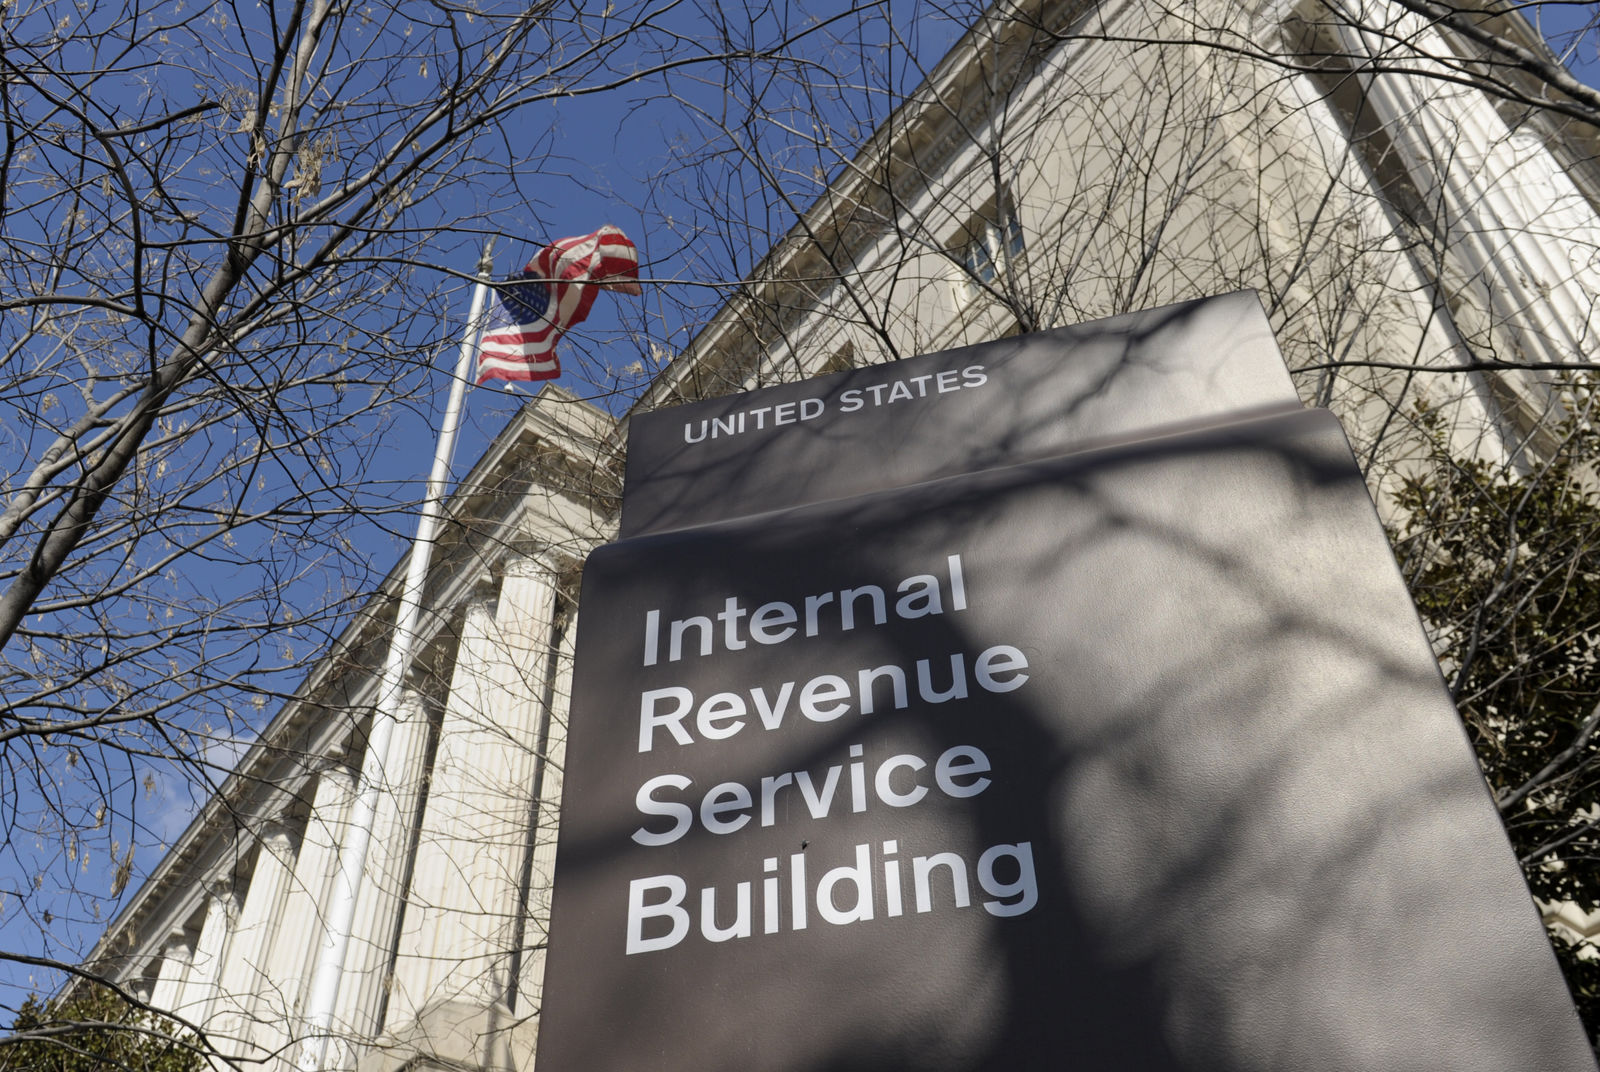 FILE - This March 22, 2013 file photo, shows the exterior of the Internal Revenue Service building in Washington. (AP Photo/Susan Walsh, File)